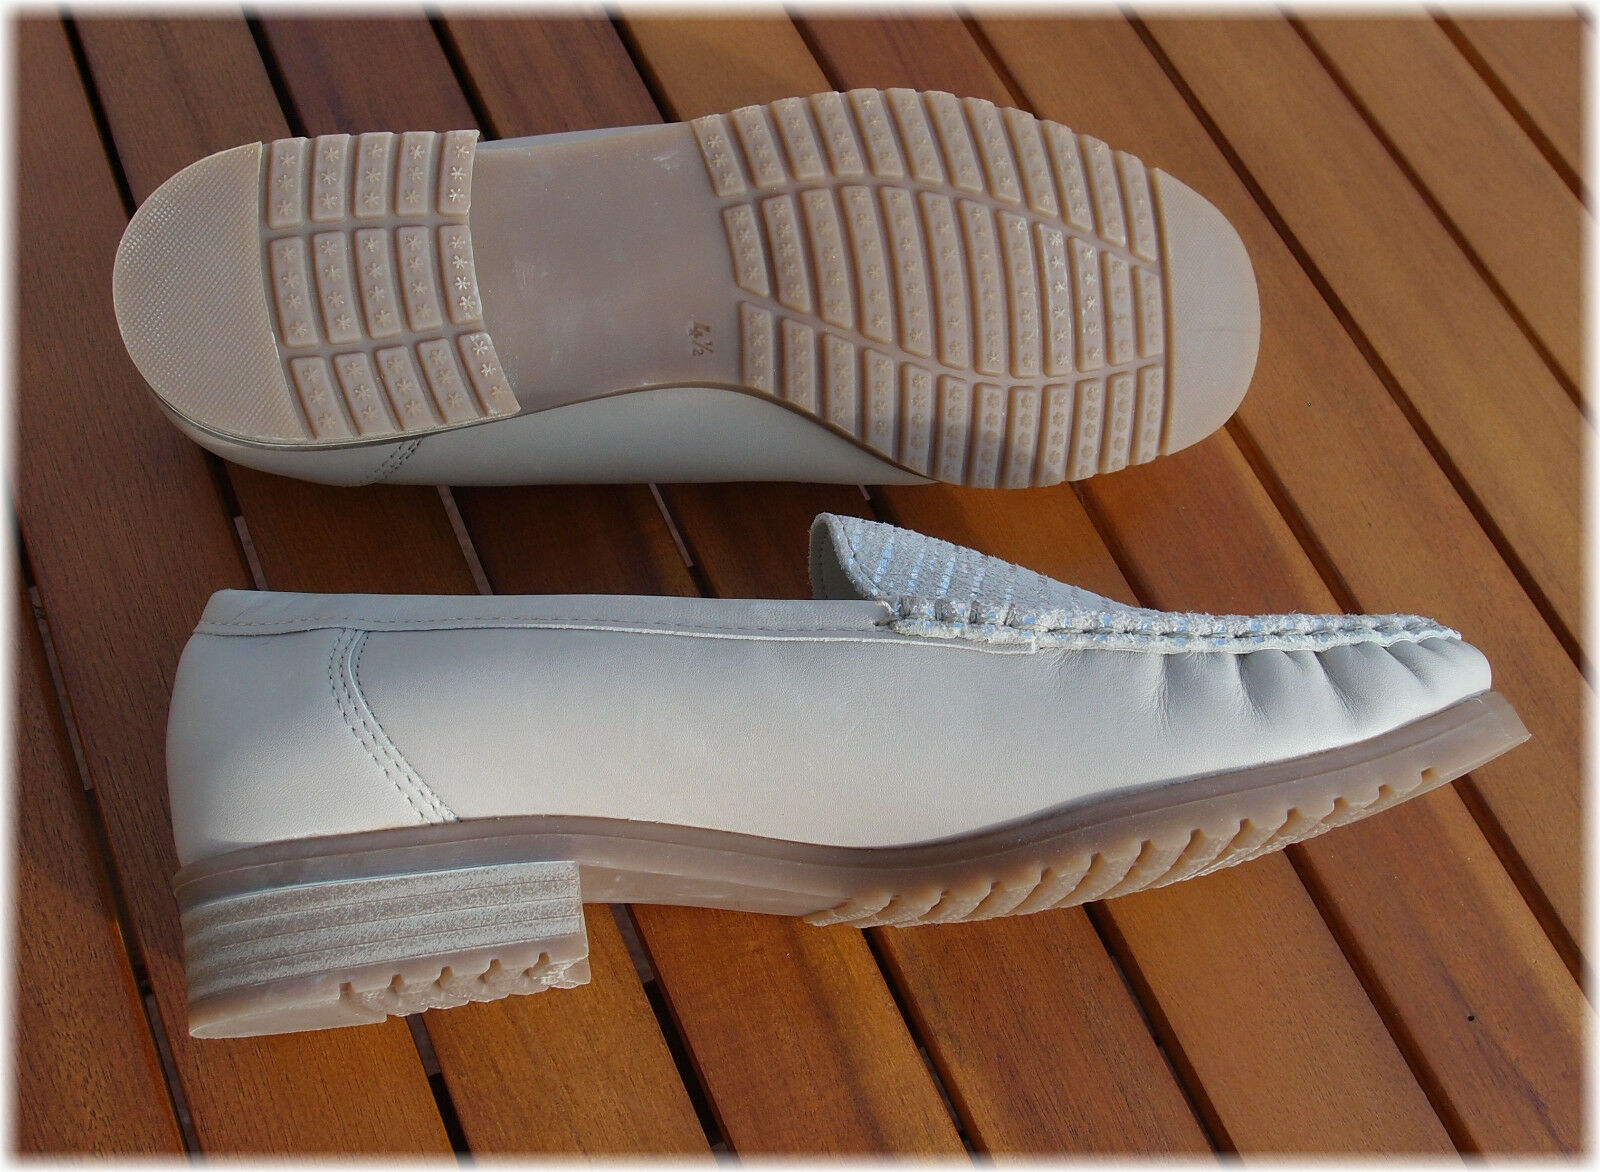 separation shoes 2f848 5fd6c Jenny by ARA QVC Weite G Slipper Schuhe (4 taupe Silber Gr ...